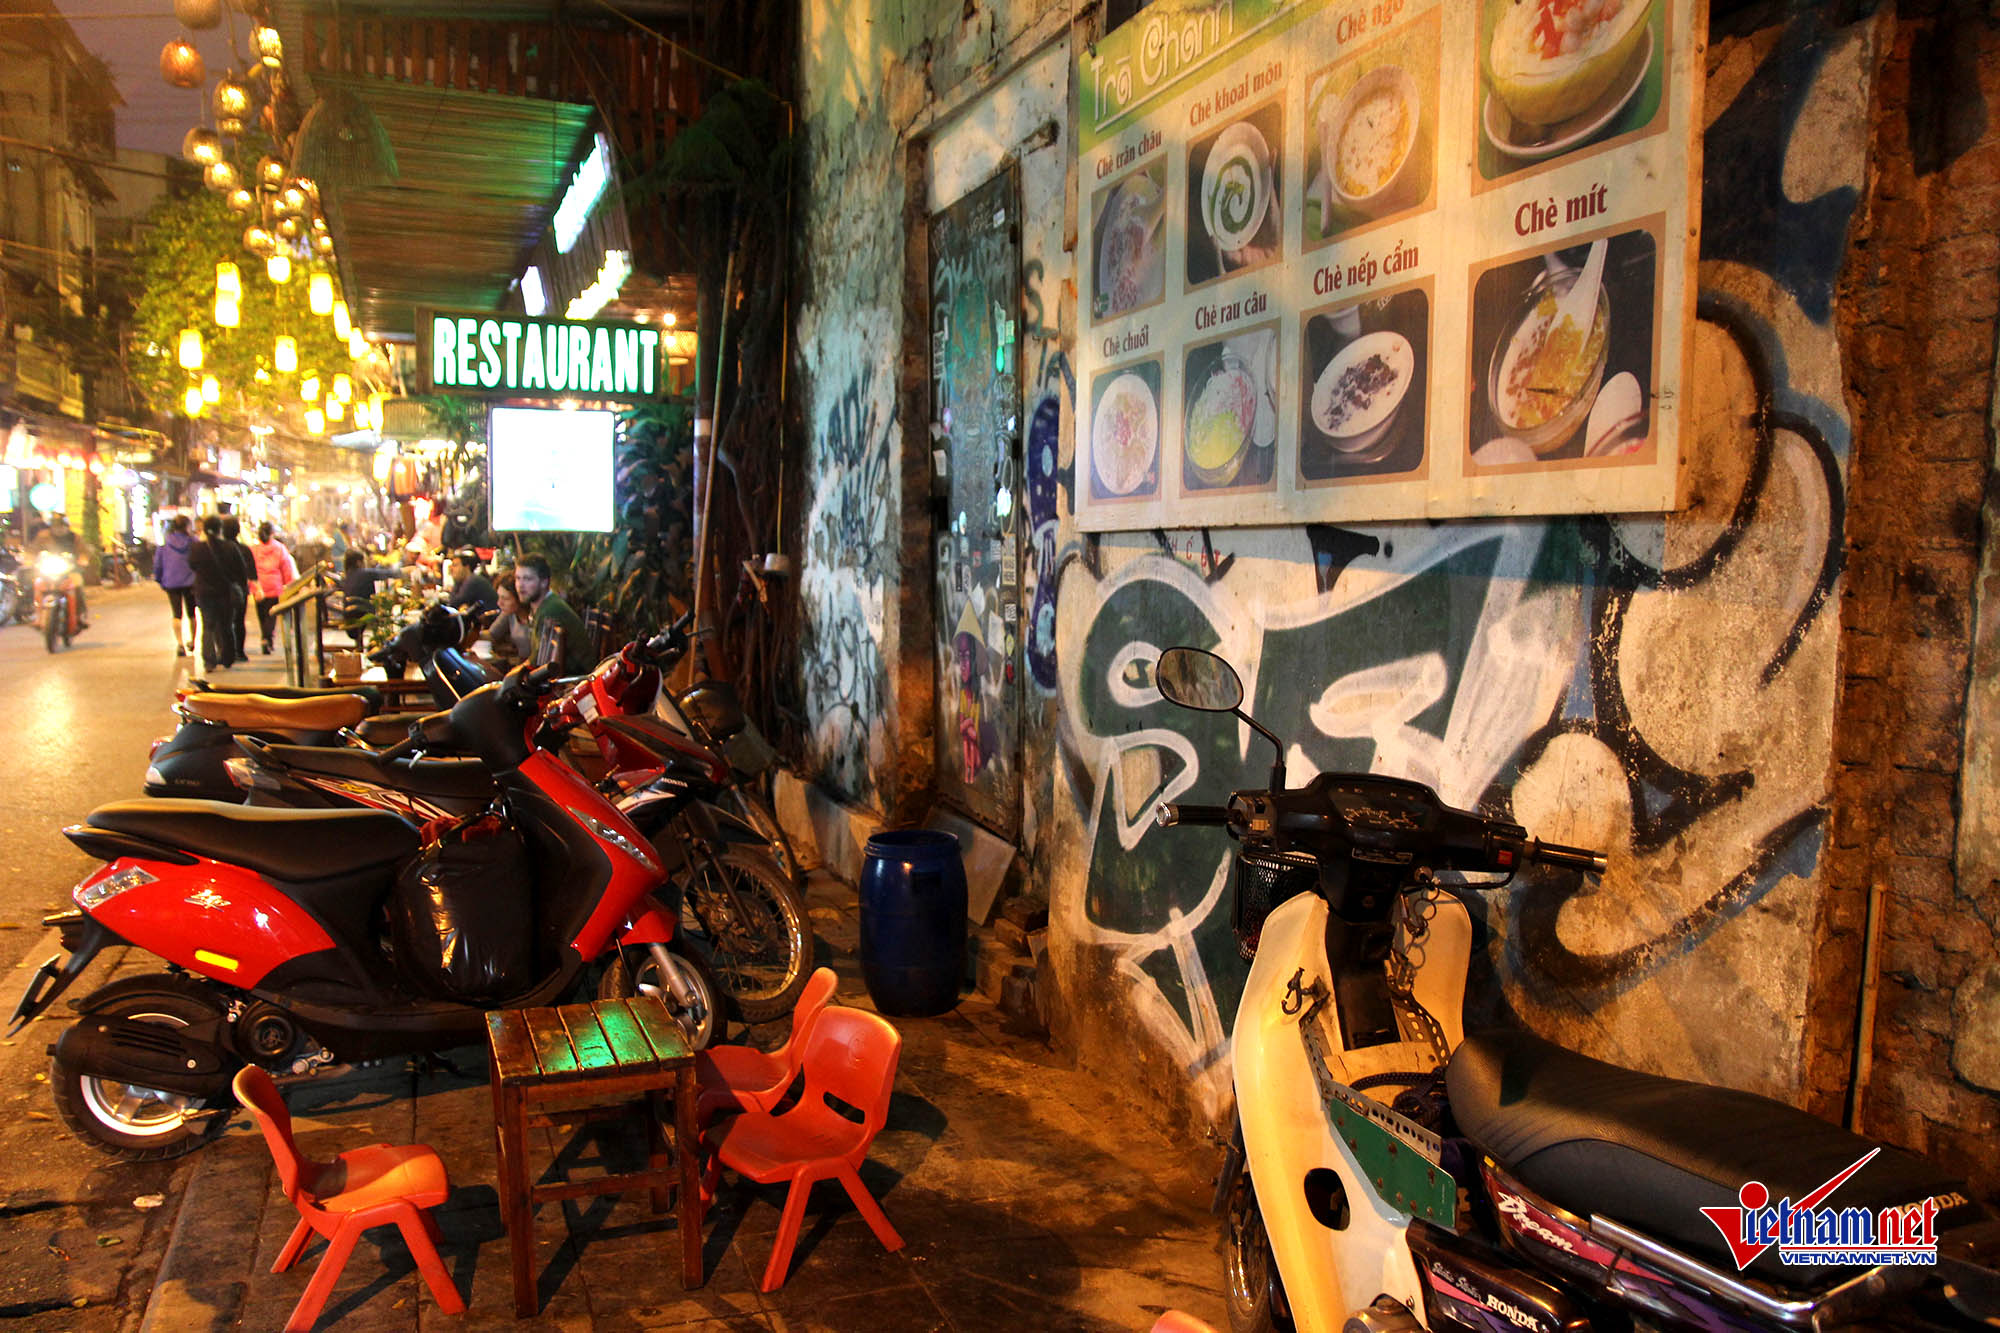 Hanoi Old Quarter suffers graffiti tag rash